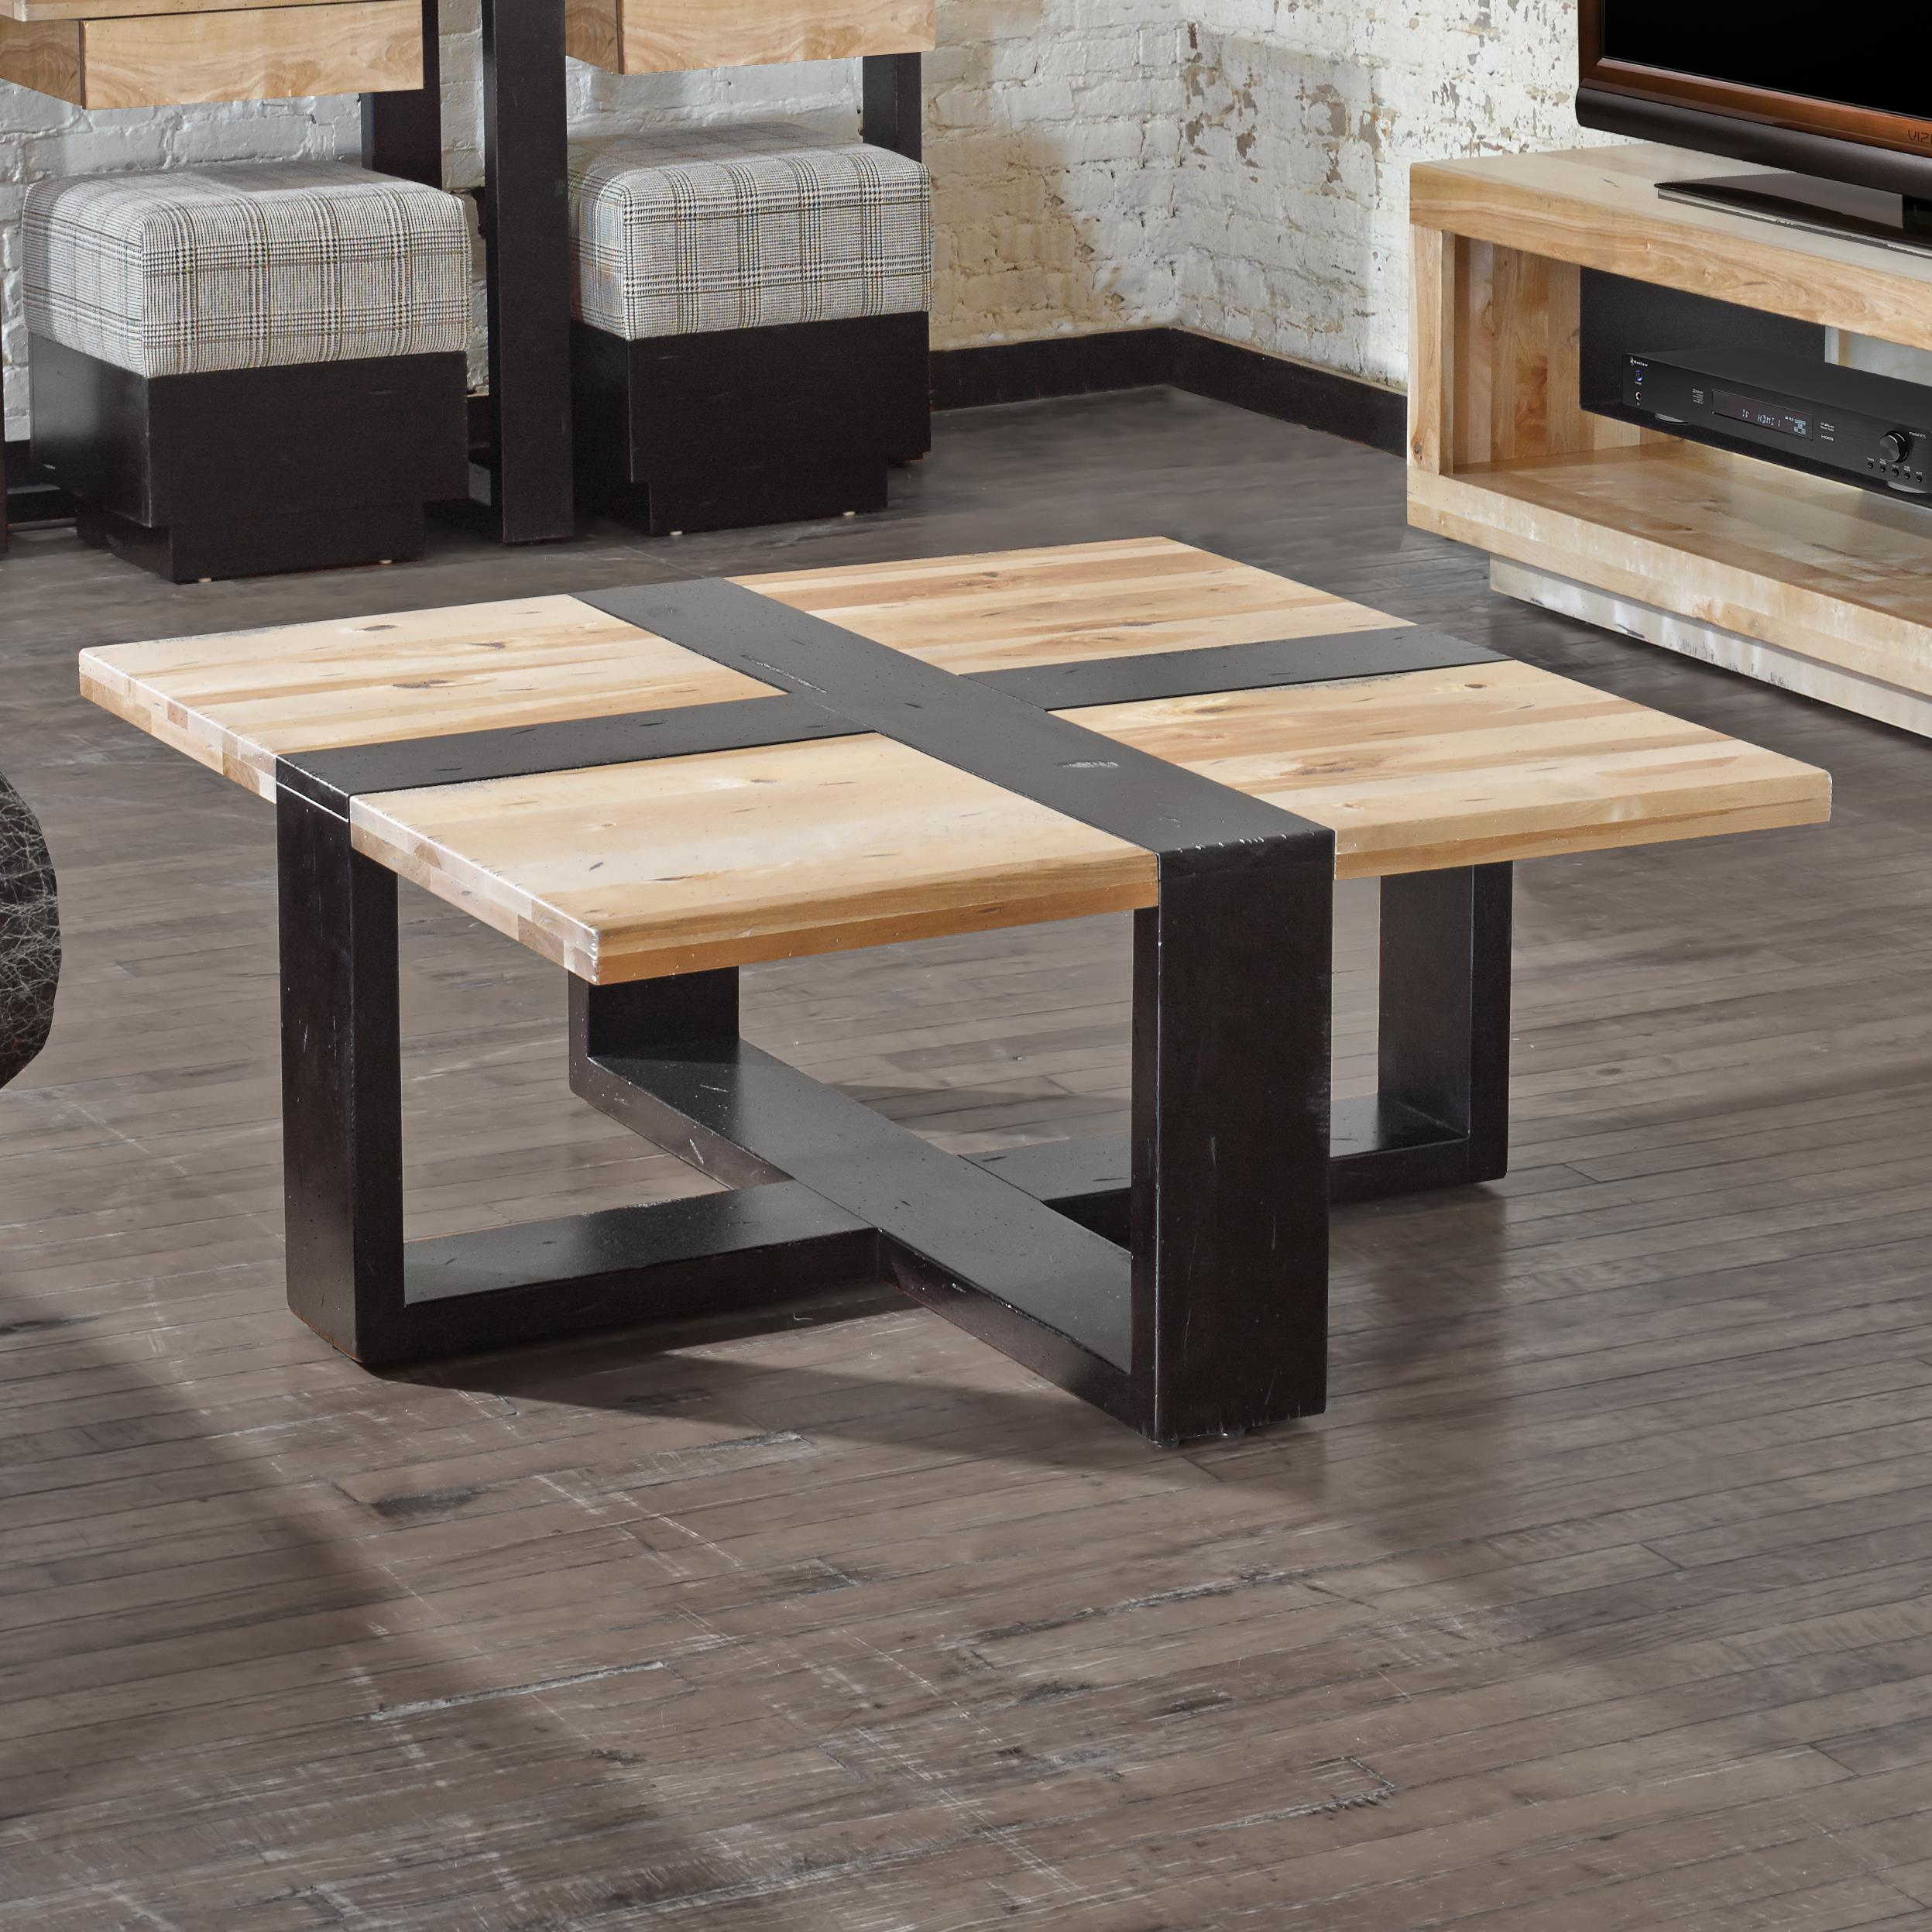 Loft - Living <b>Customizable</b> Square Coffee Table by Canadel at Steger's Furniture